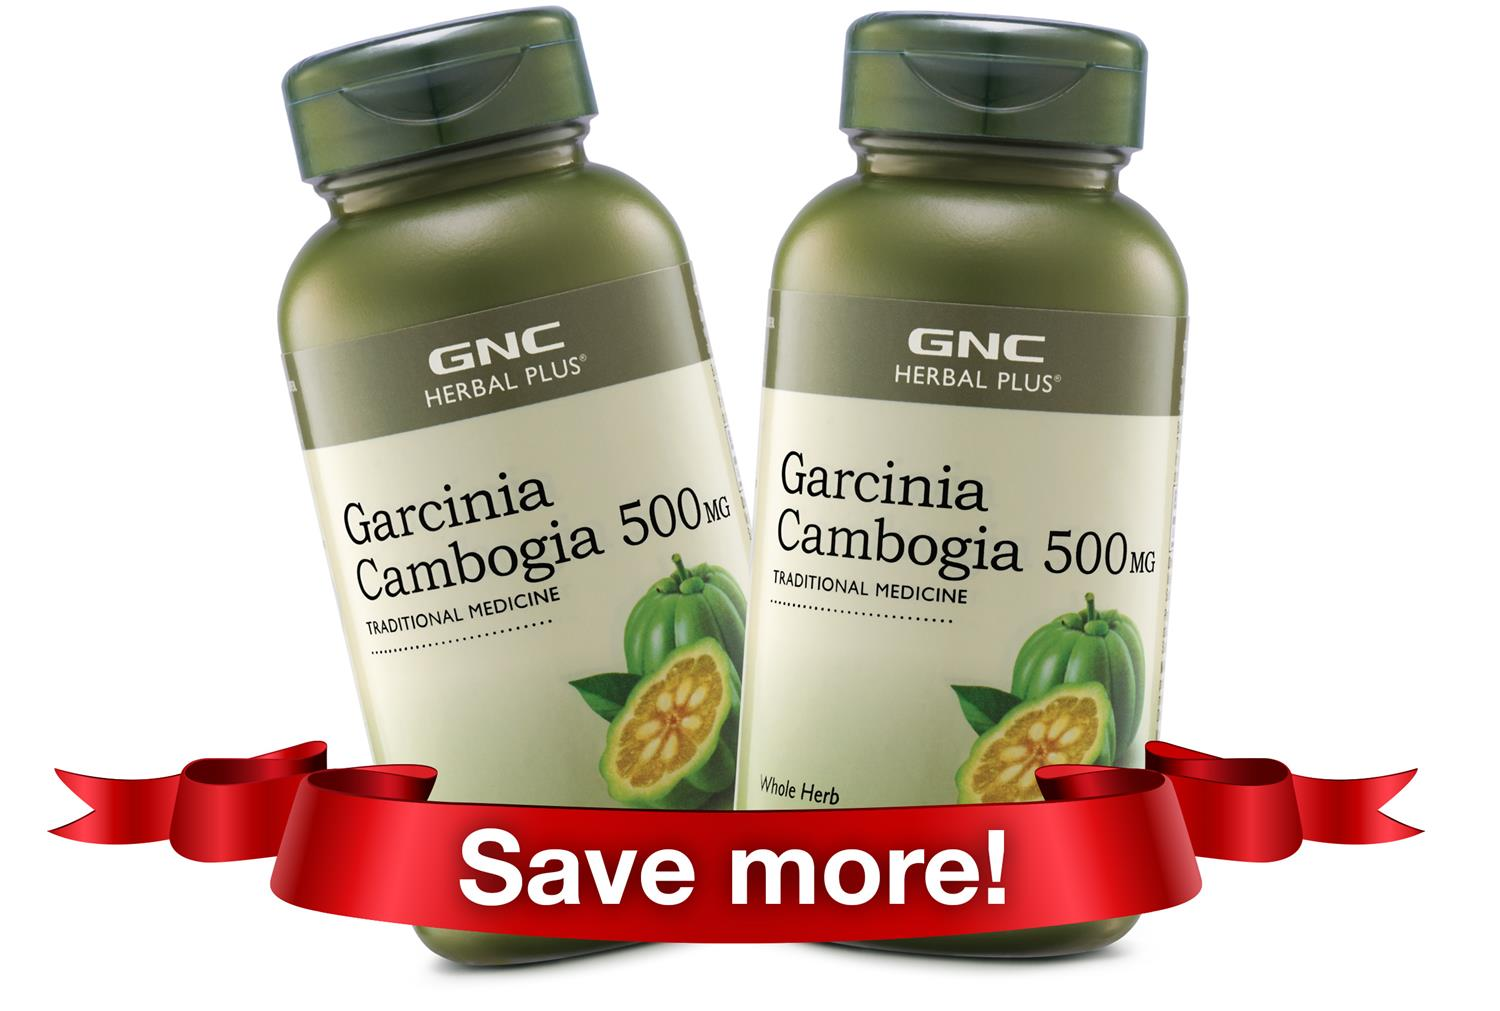 Bundle Gnc Garcinia Cambogia 500mg End 1 21 2019 1 15 Pm